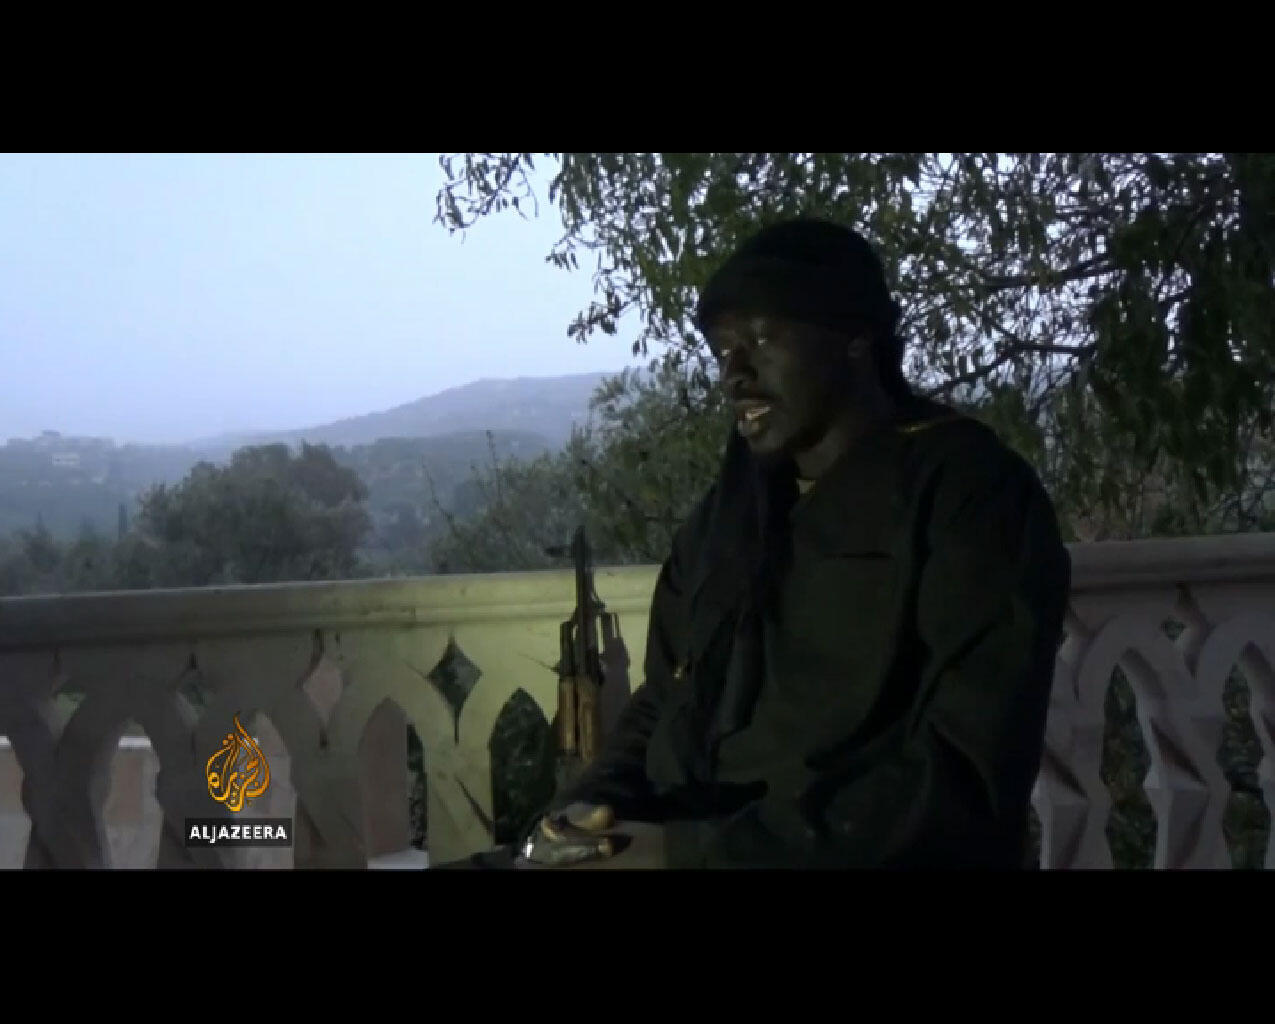 Omar Omsen, also known as Omar Diaby, was one of the main recruiters of French nationals to the jihadist fight in Syria